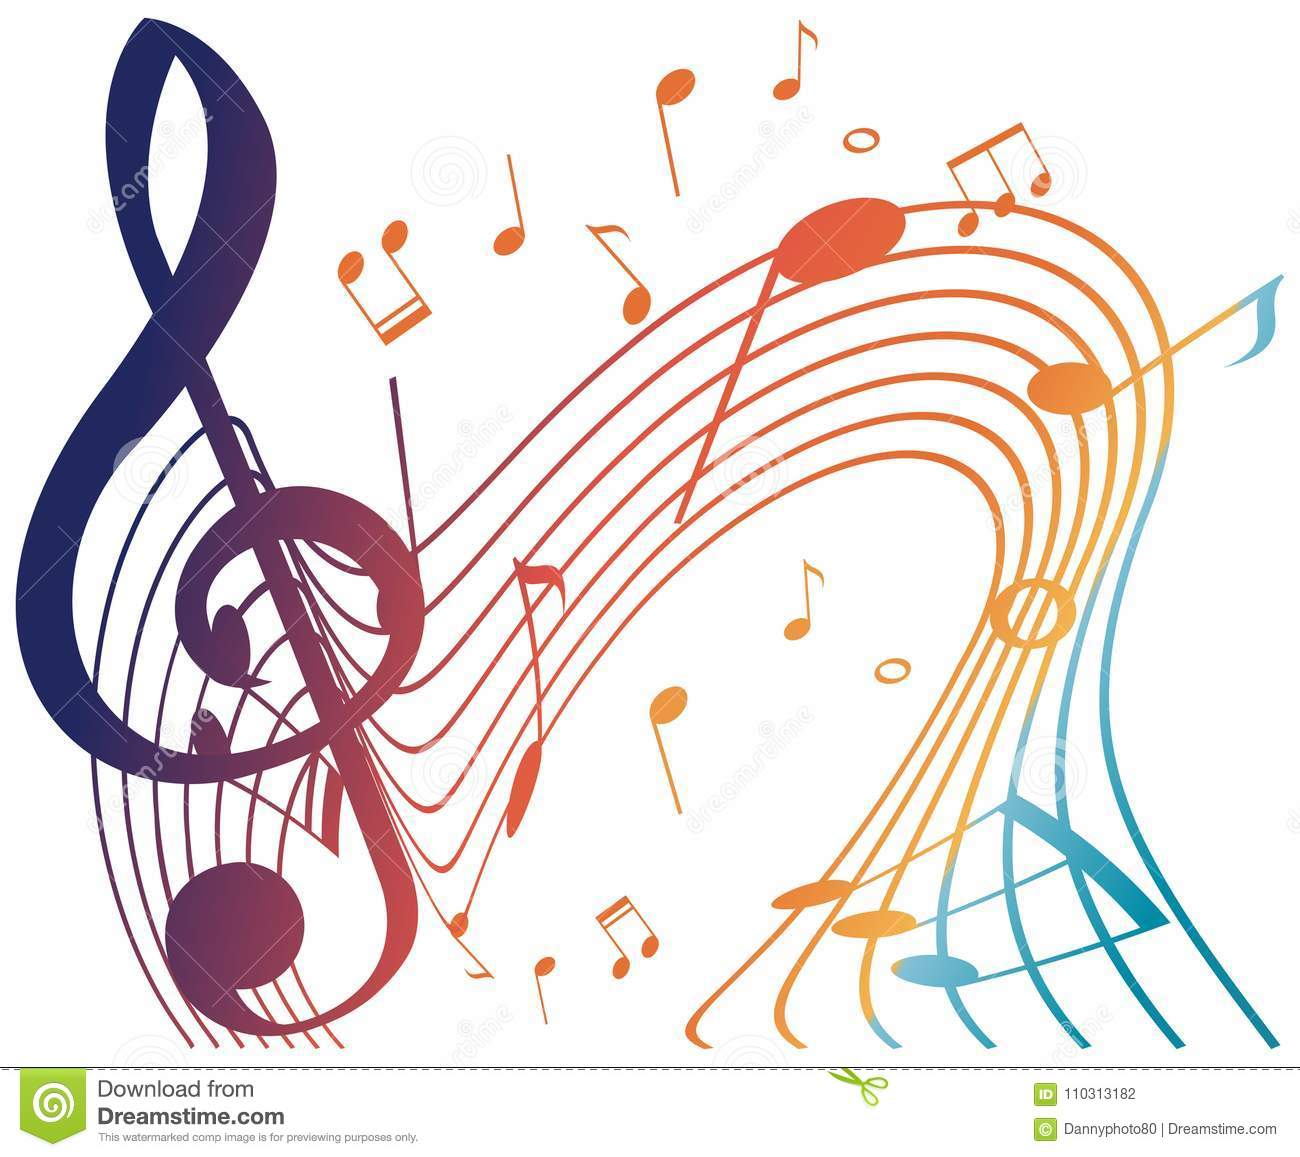 Colorful Musicnotes On White Background Stock Vector Illustration